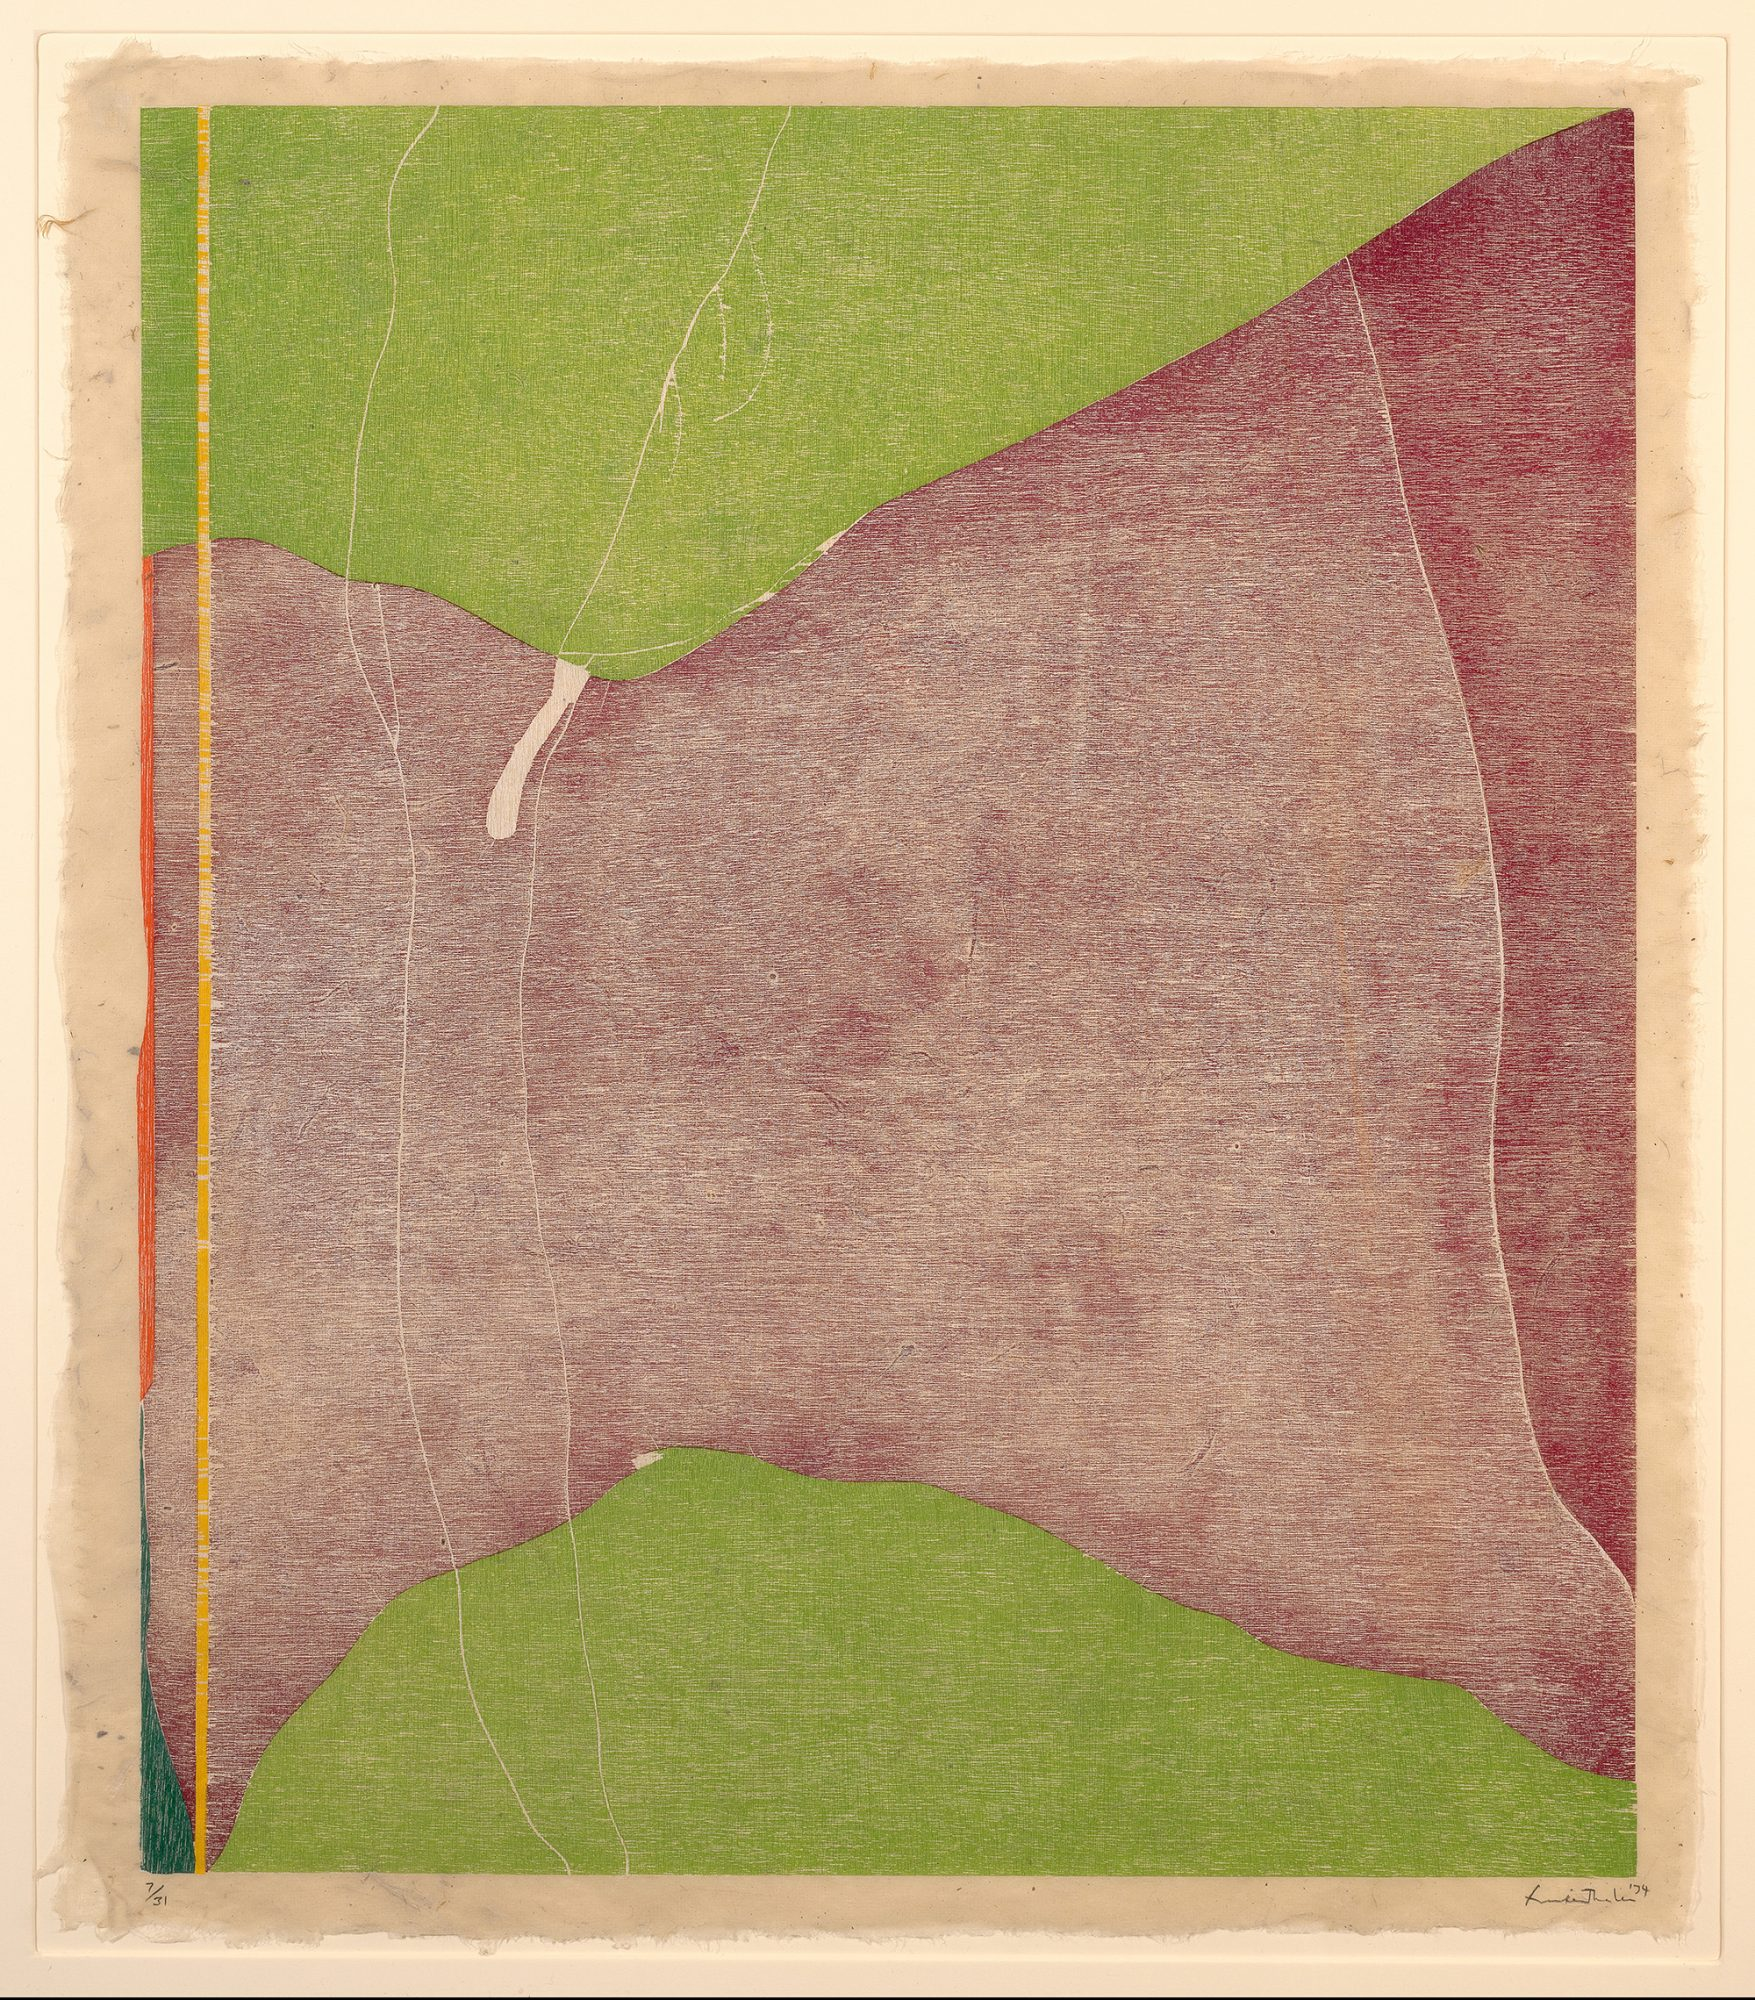 Helen Frankenthaler, Savage Breeze, 1974. Woodcut on Nepalese hand-made paper, 31 1/2 x 27 in. Gift of William H. McCulloch and Frank H. McCulloch, Class of 1968, in honor of Edith L. and Frank W. McCulloch, Class of 1926. 97.7